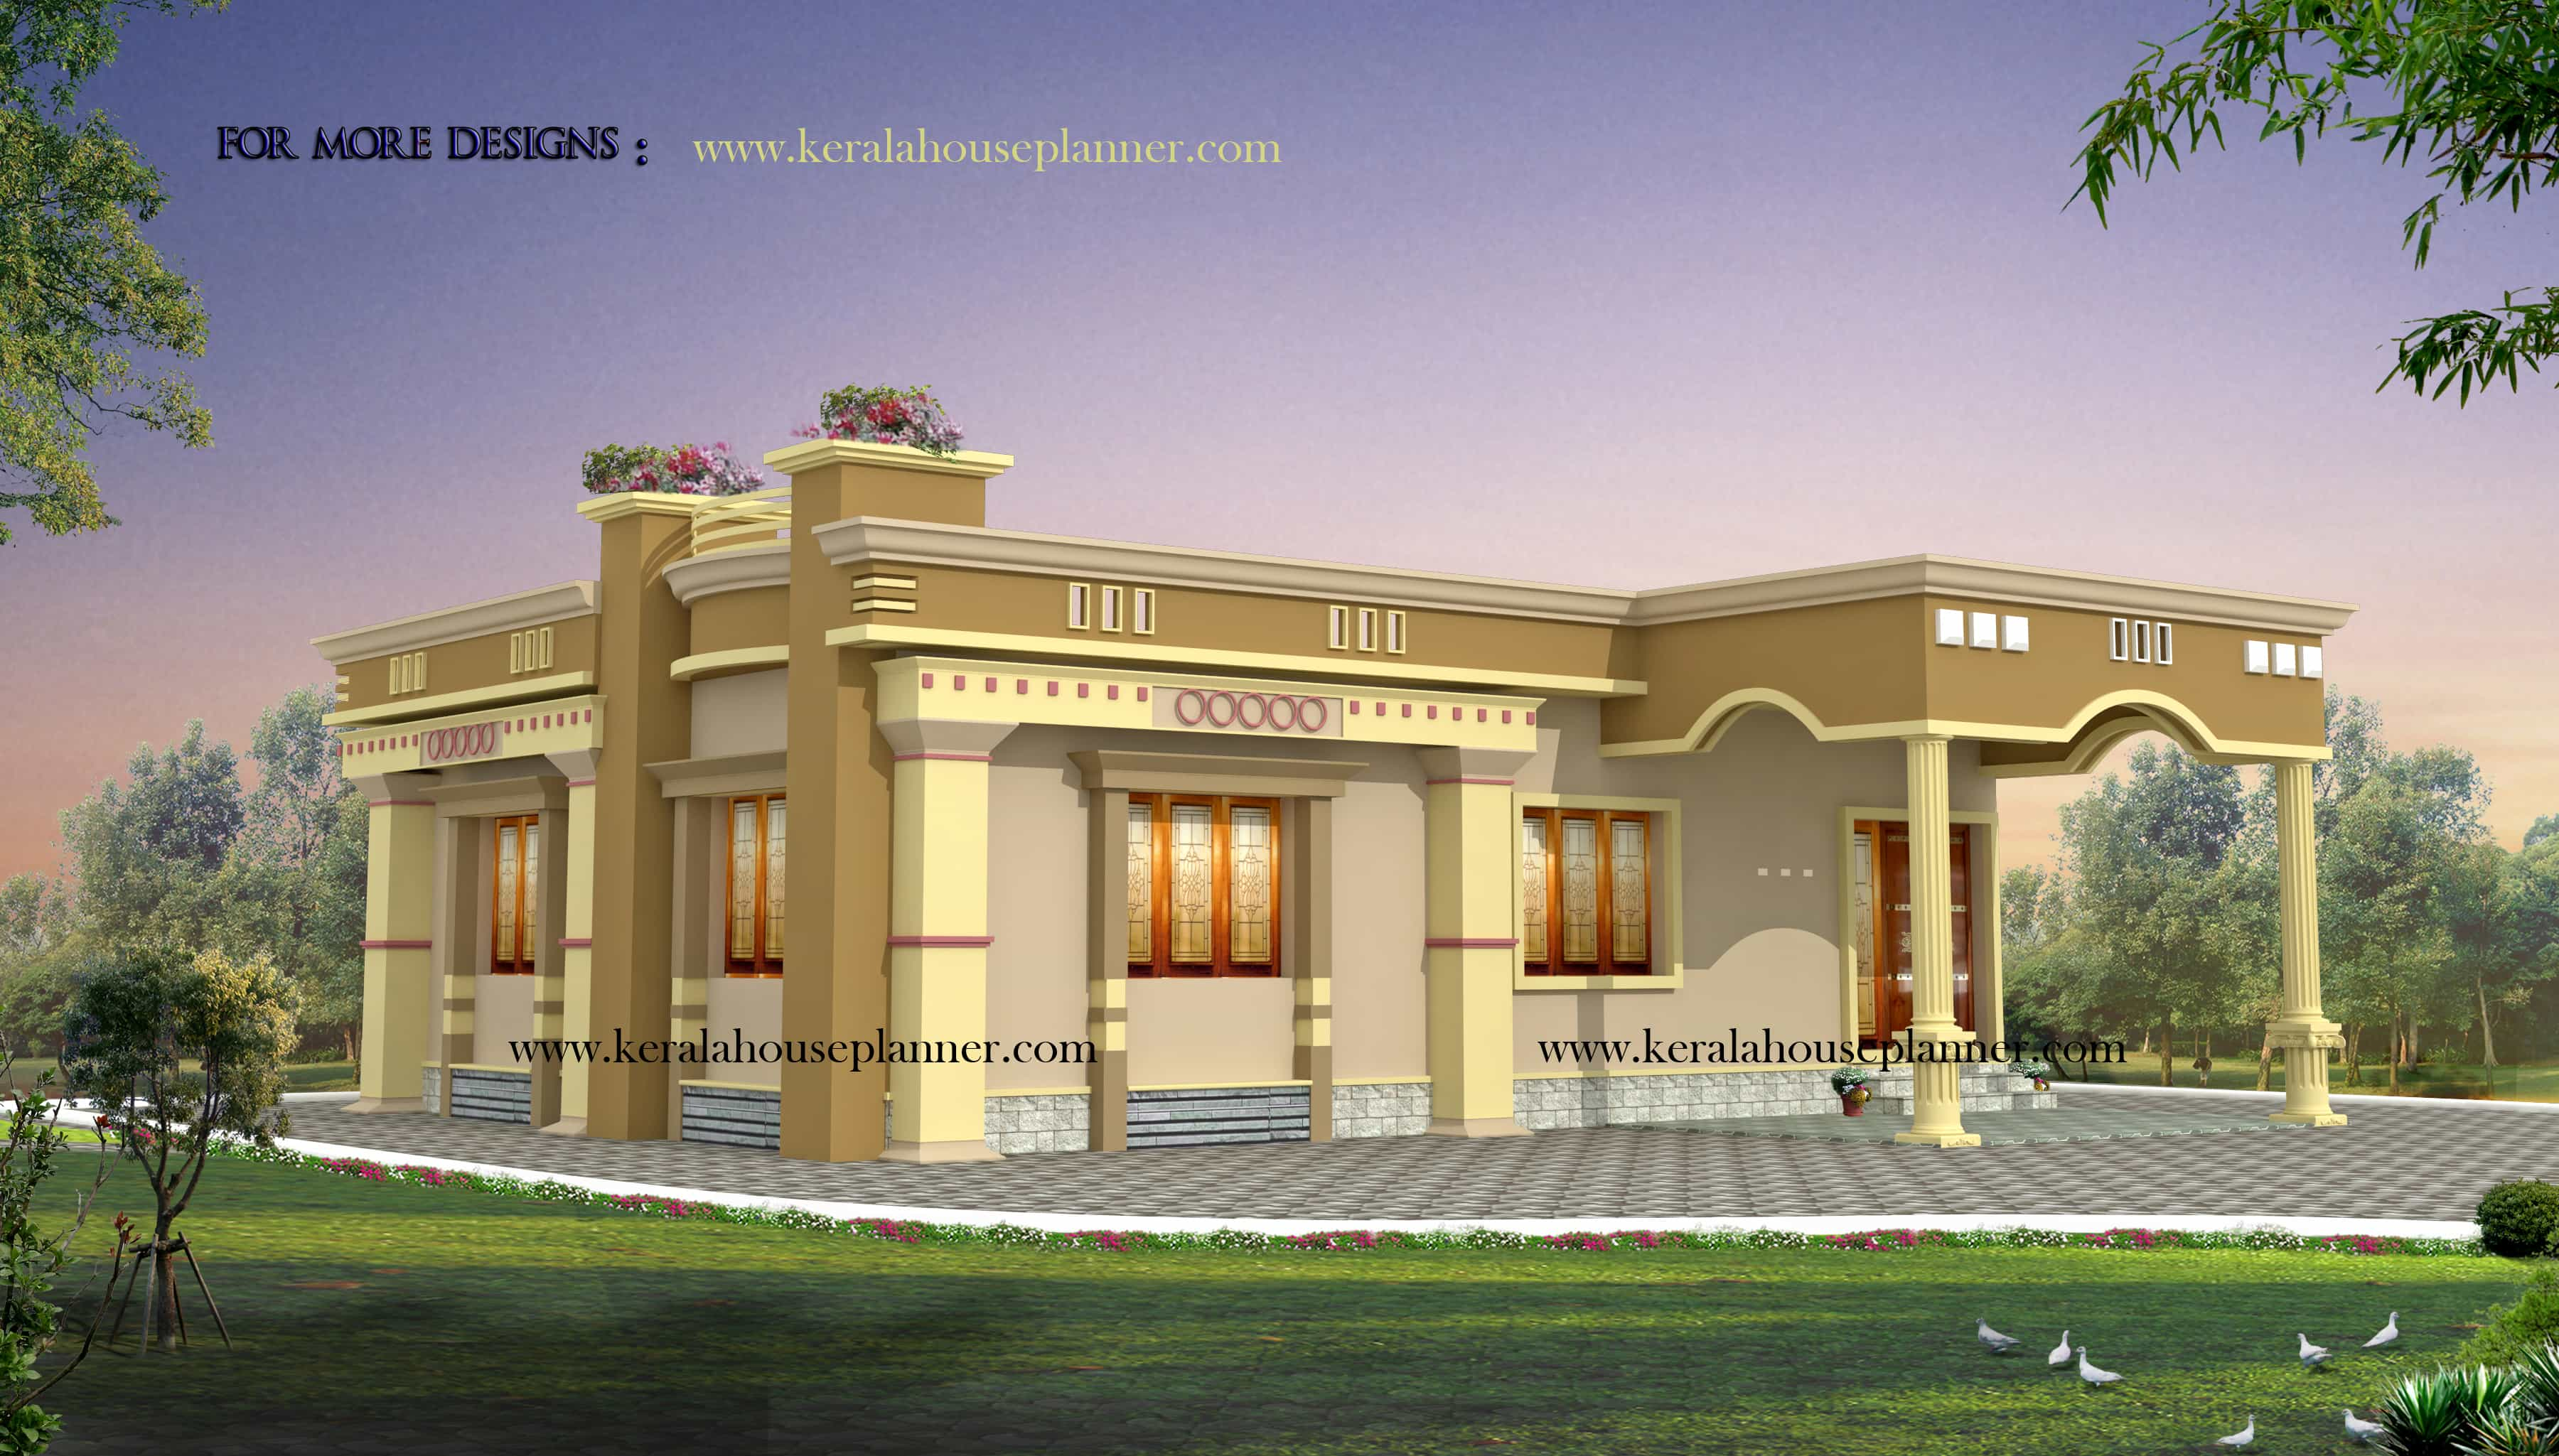 Kerala house plans 1200 sq ft with photos khp for Kerala house construction plans